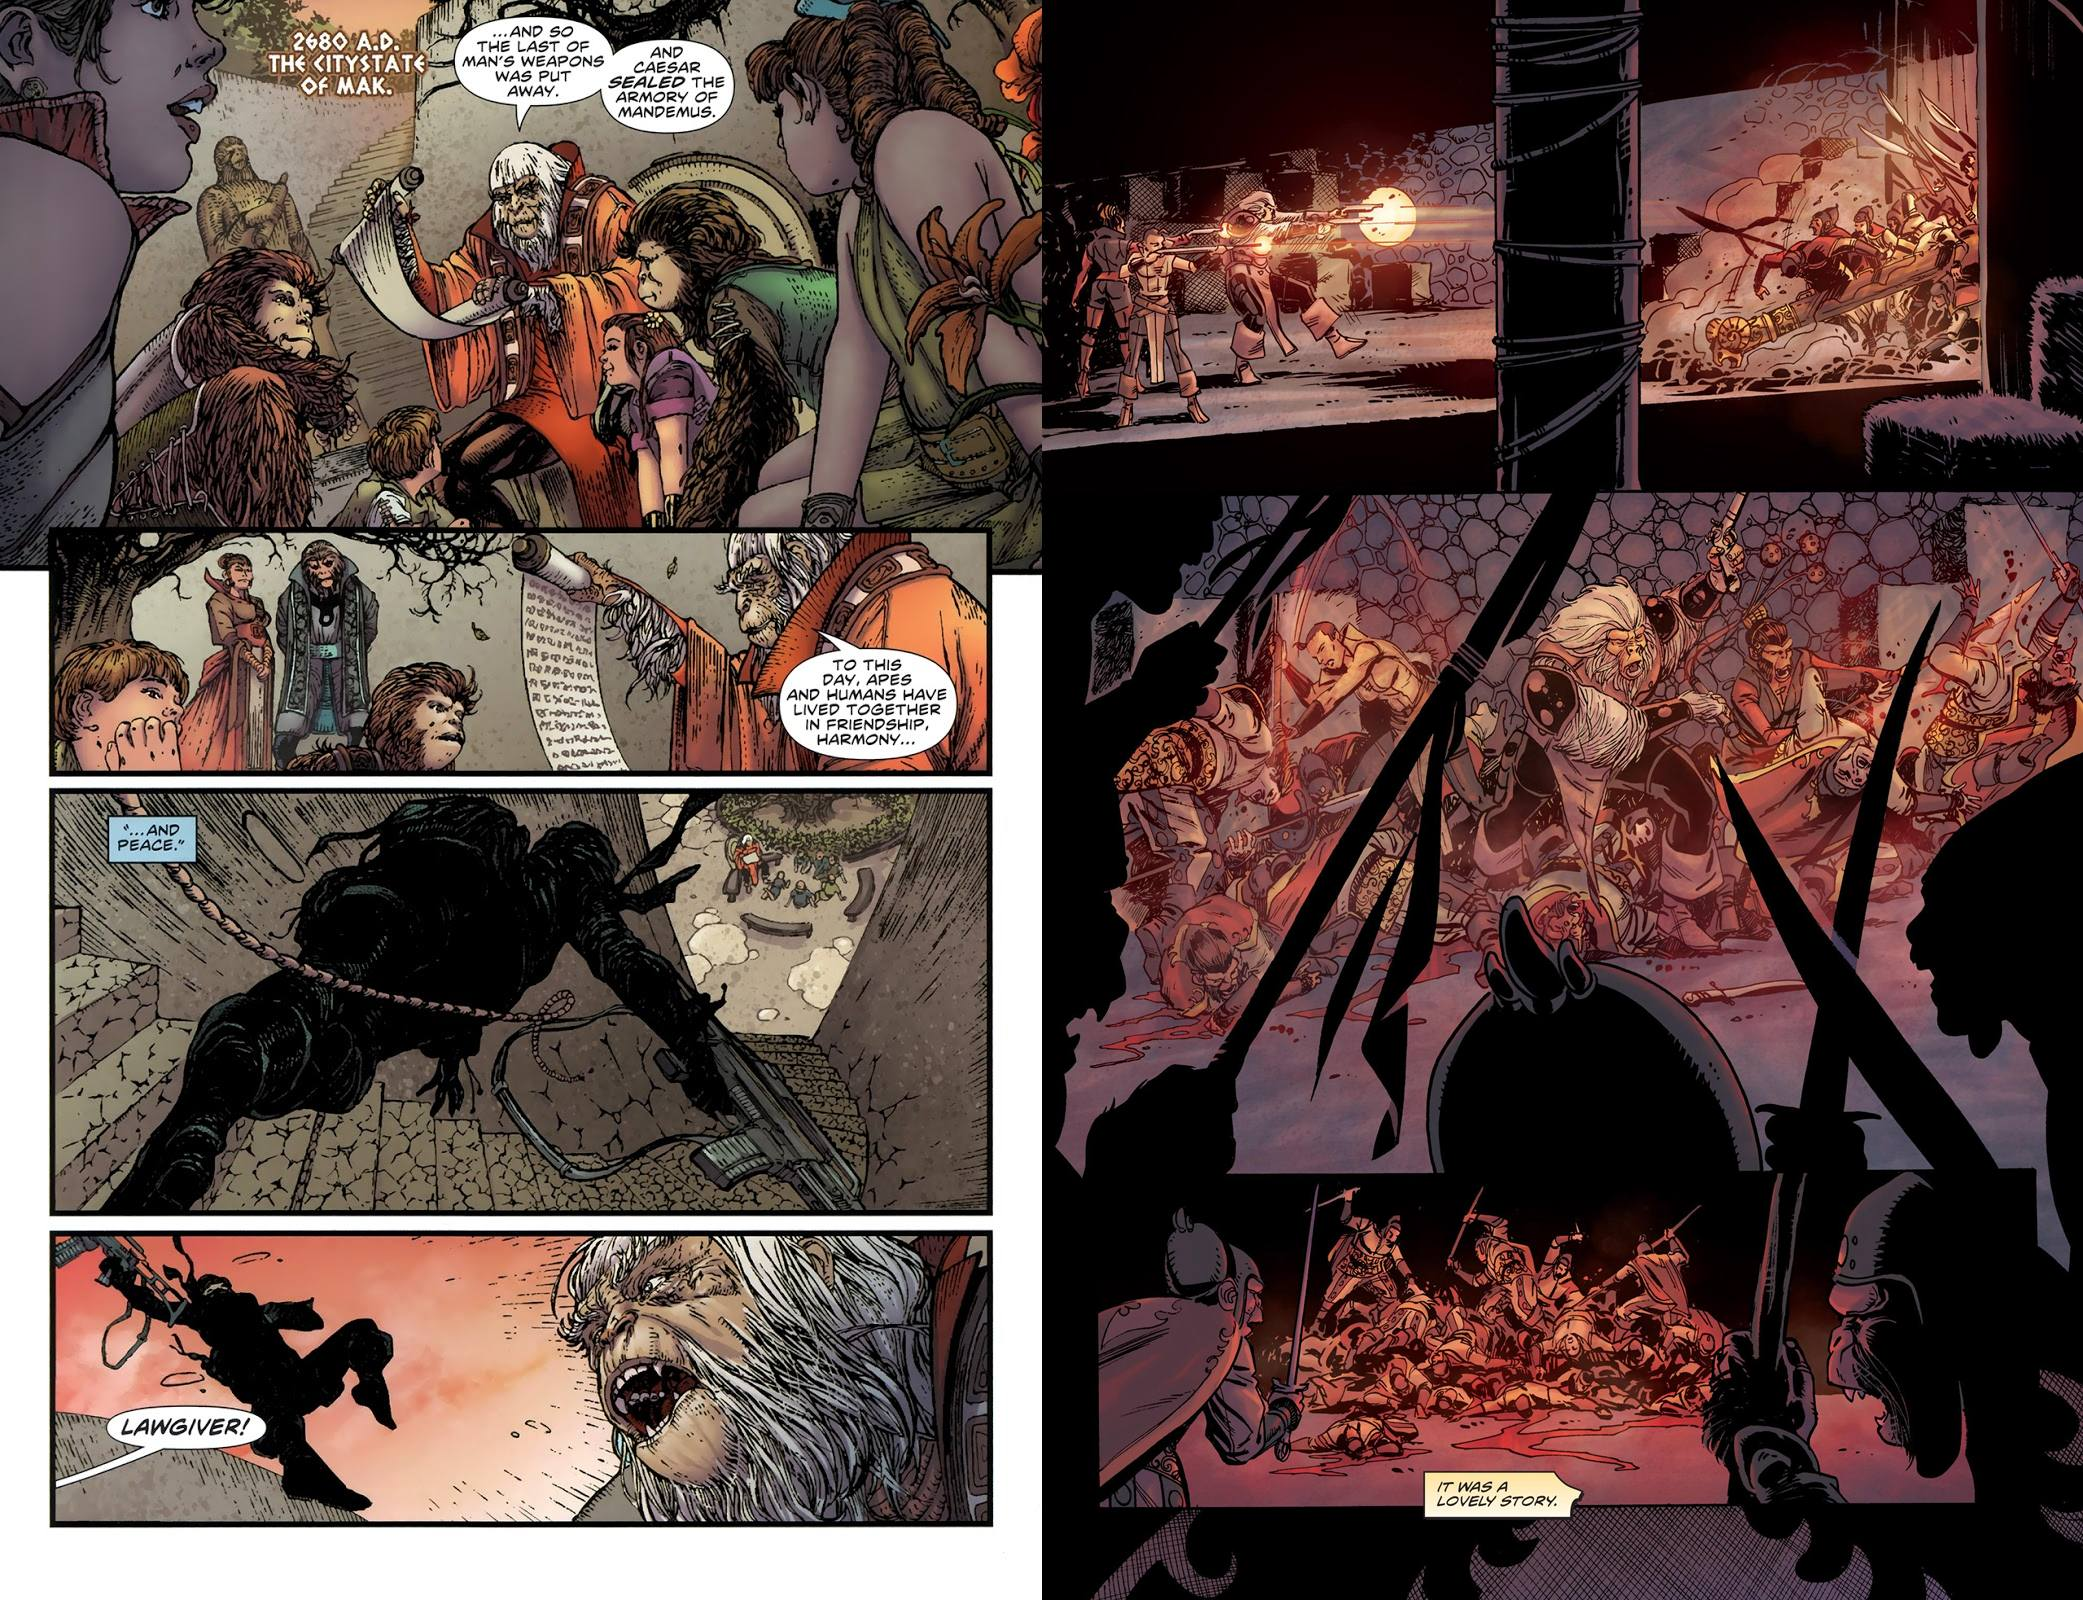 Planet of the Apes Omnibus review